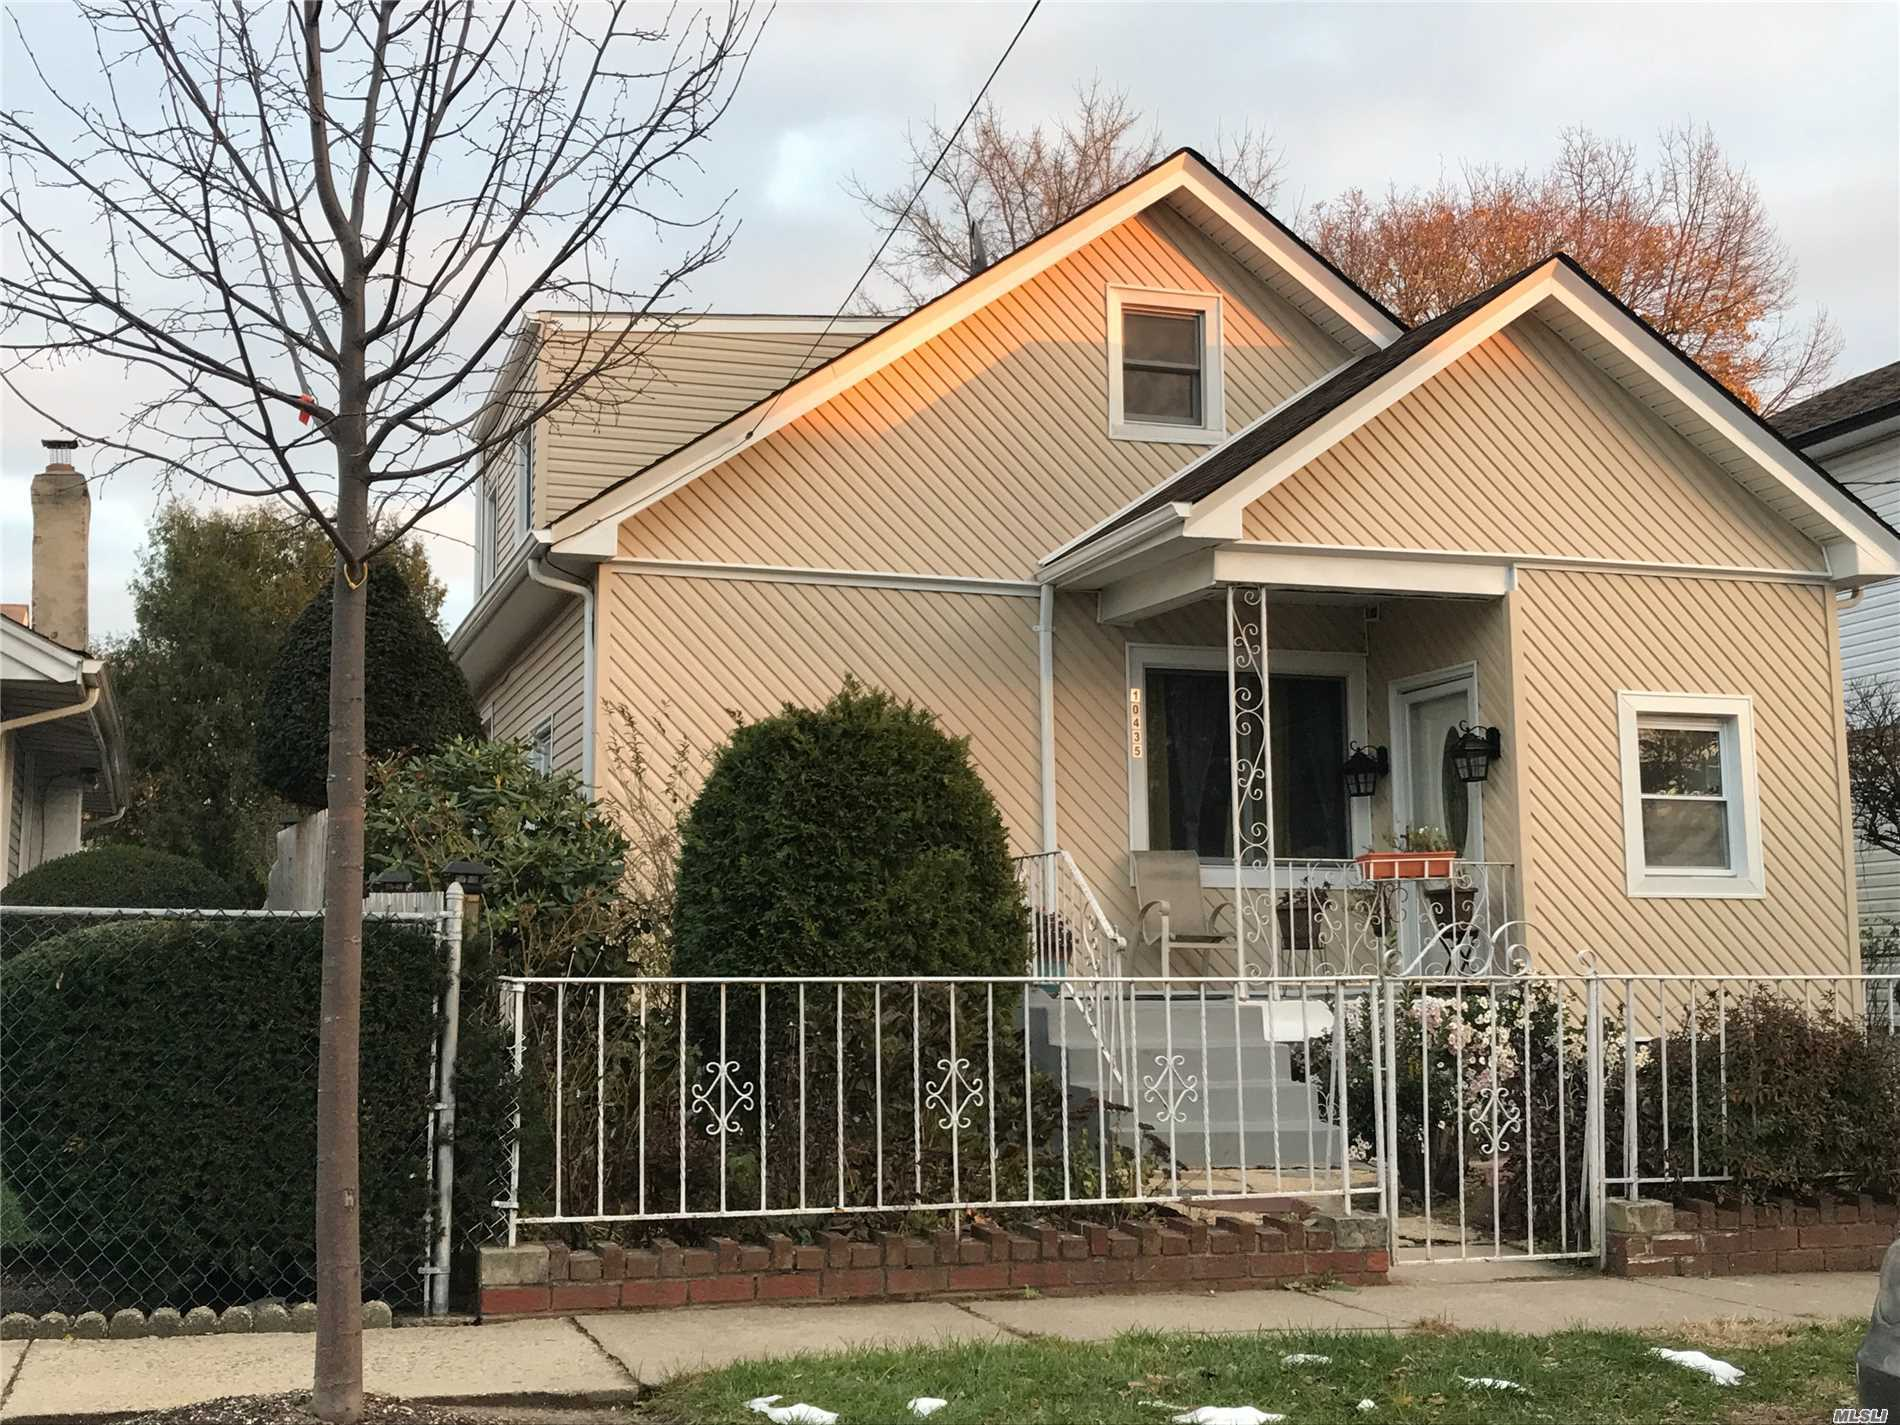 Beautiful Home For Sale. New Roof, Hardwood Floors, Crown Molding, Walk In Closet, Mostly New Anderson Windows, Granite Countertops, Oak Cabinets. Come And Make A Offer!